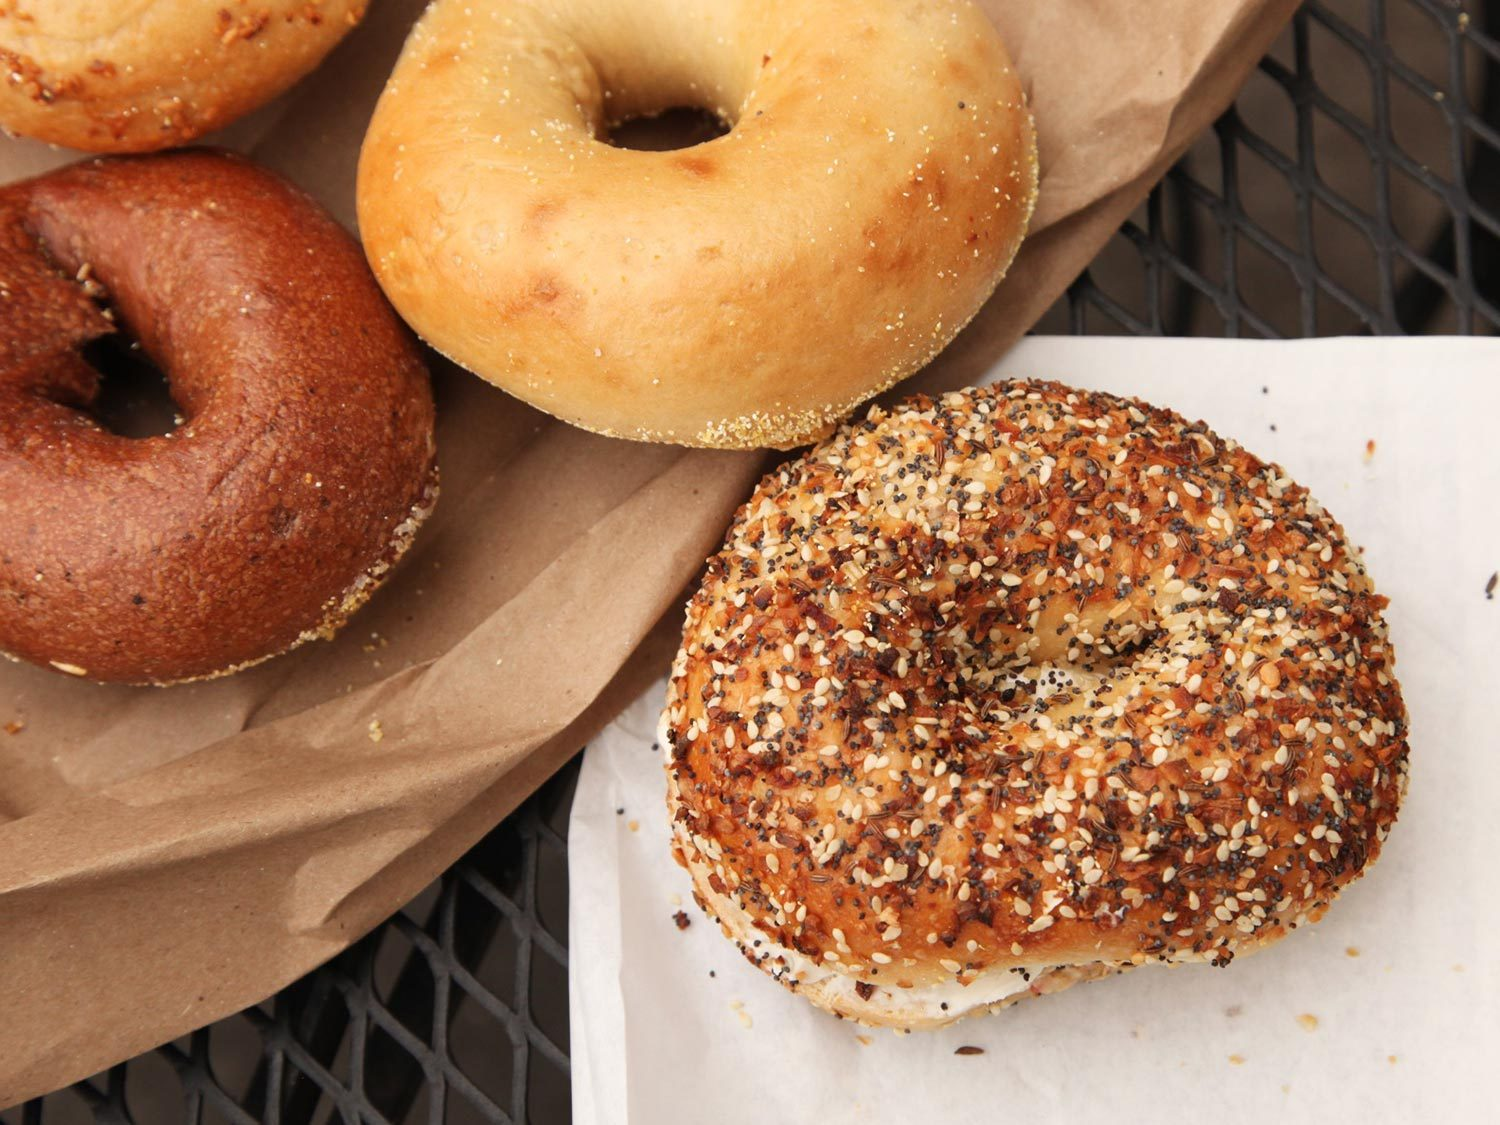 20150324-San-Francisco-Bagels-04-1500x1125 image